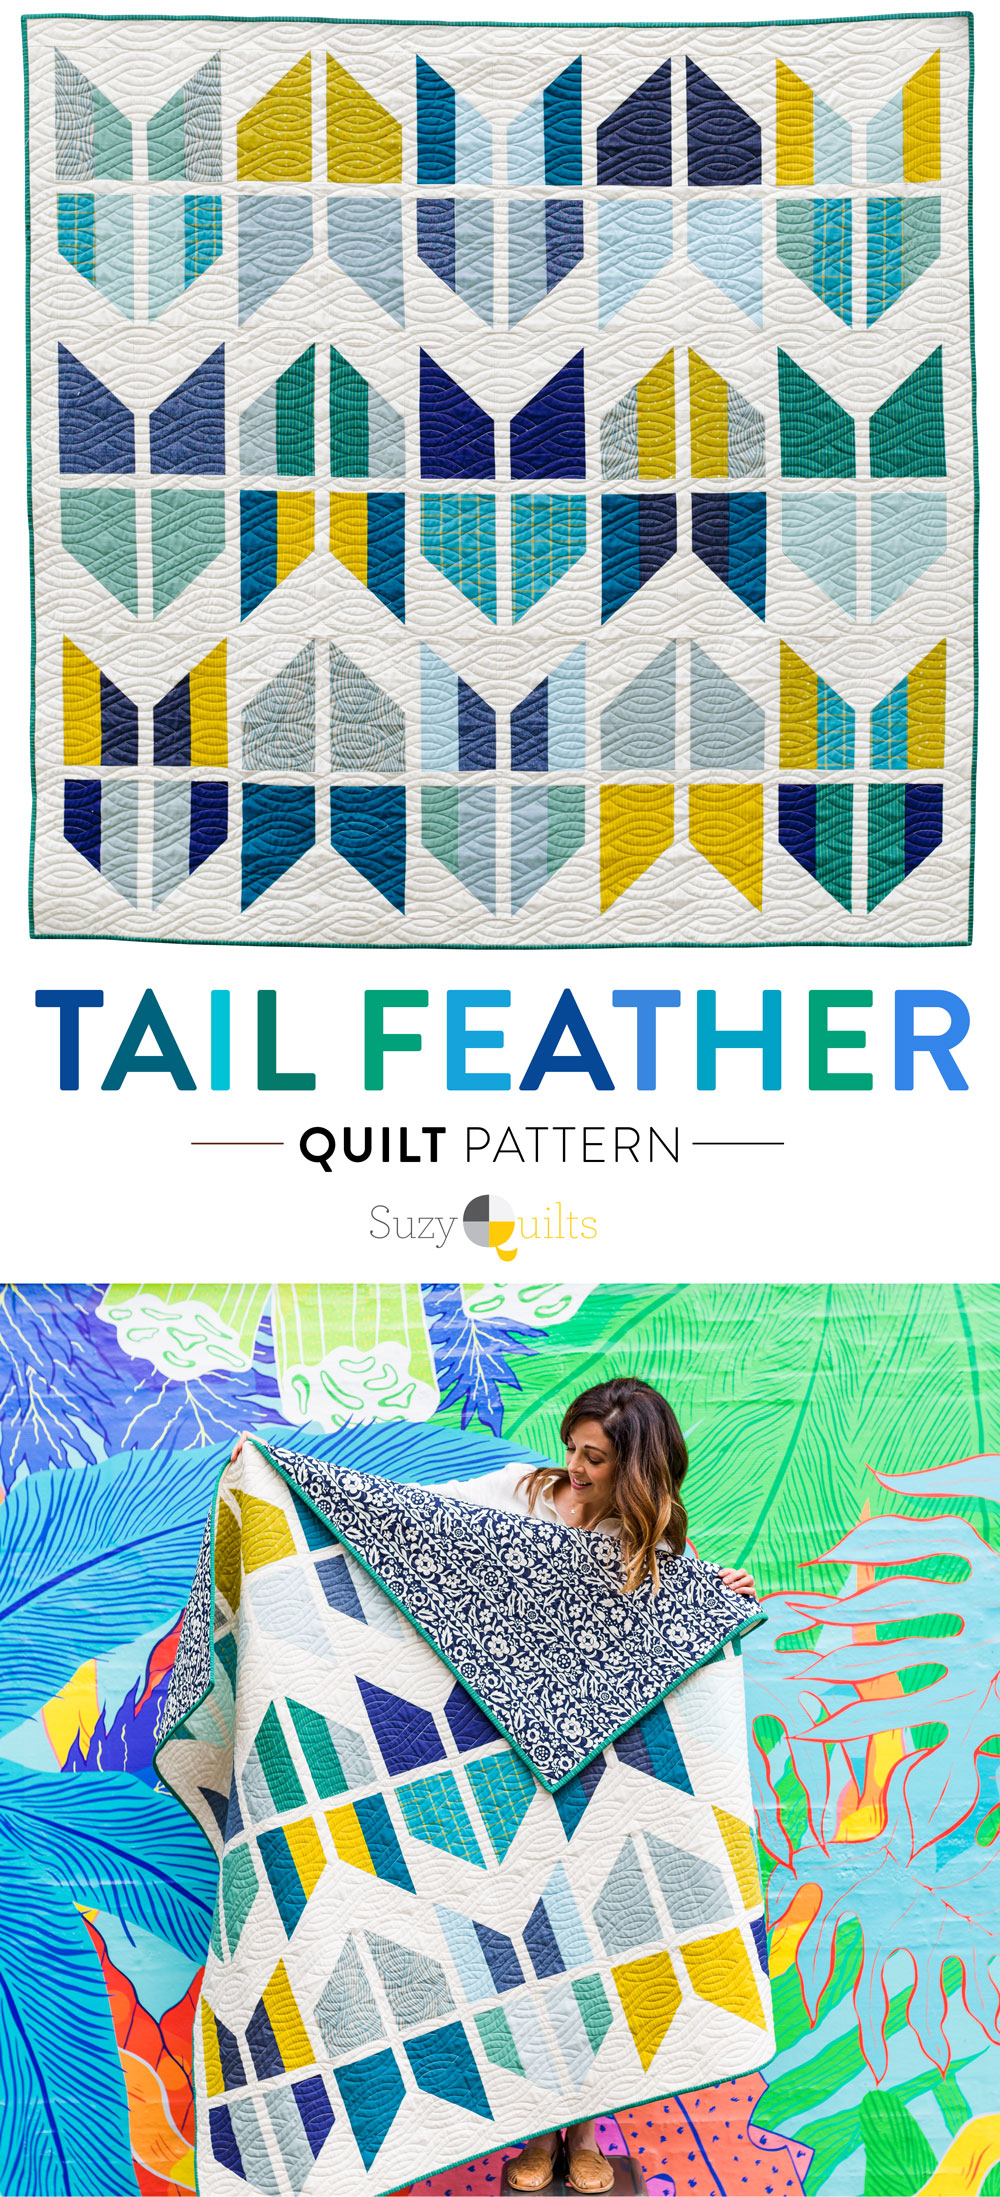 The Tail Feather Quilt Pattern is a modern quilt design that is fat quarter friendly! This PDF digital download includes queen, twin, throw and baby quilt sizes. A great beginner quilt pattern! SuzyQuilts.com #quiltpattern #boyquilt